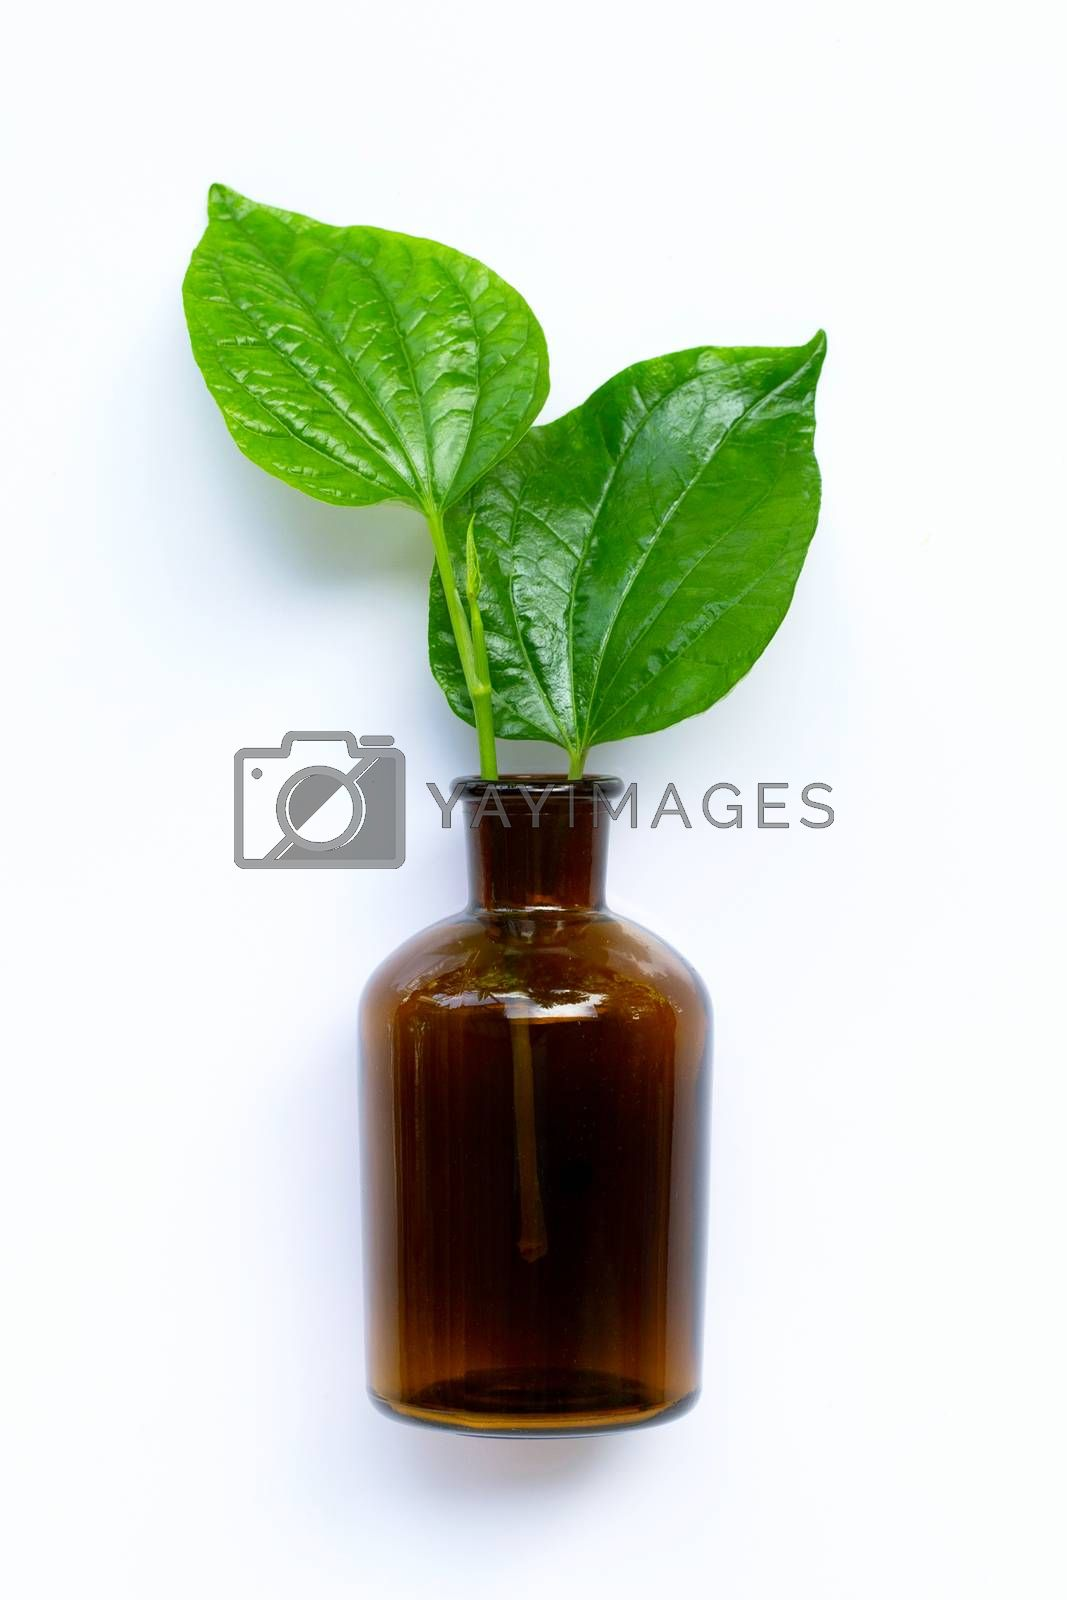 Fresh piper sarmentosum or wildbetal leafbush with essential oil bottle on white background.